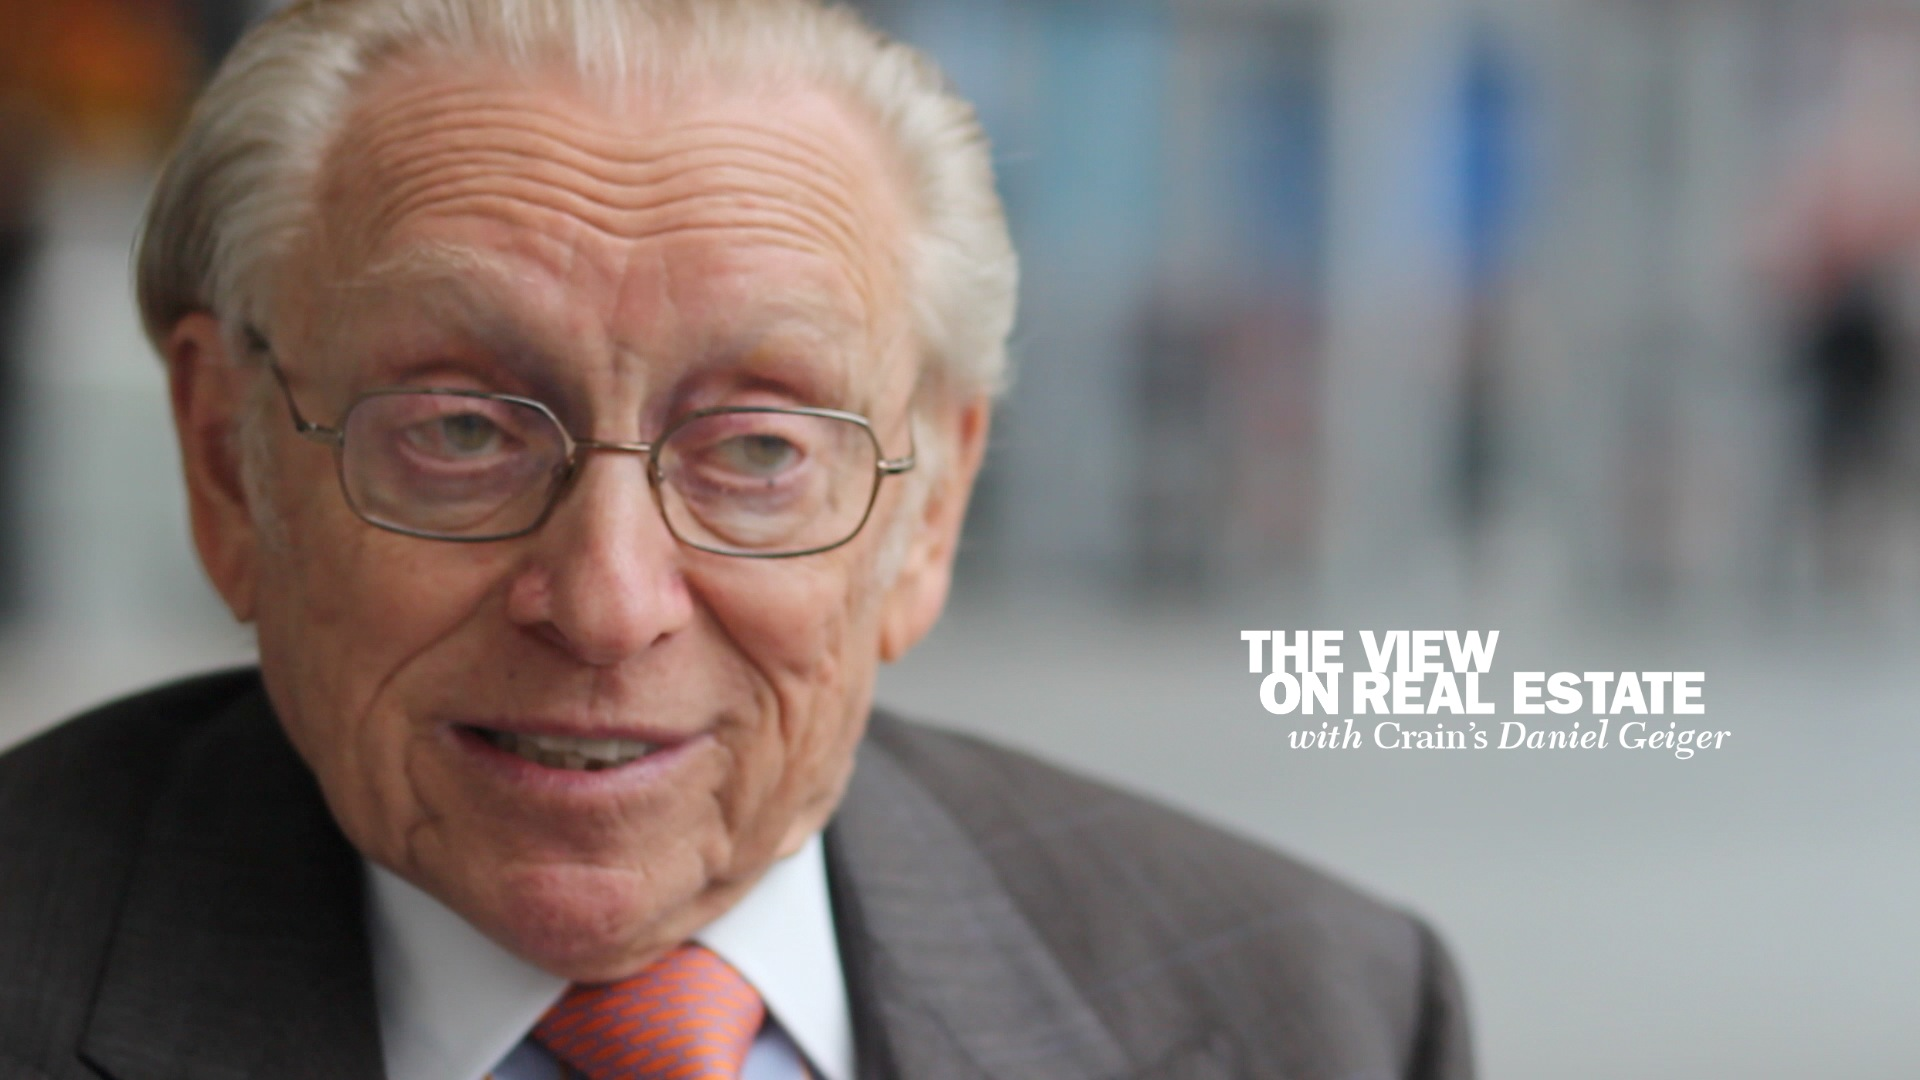 The View on Real Estate: Larry Silverstein: 'I have two more towers to build'